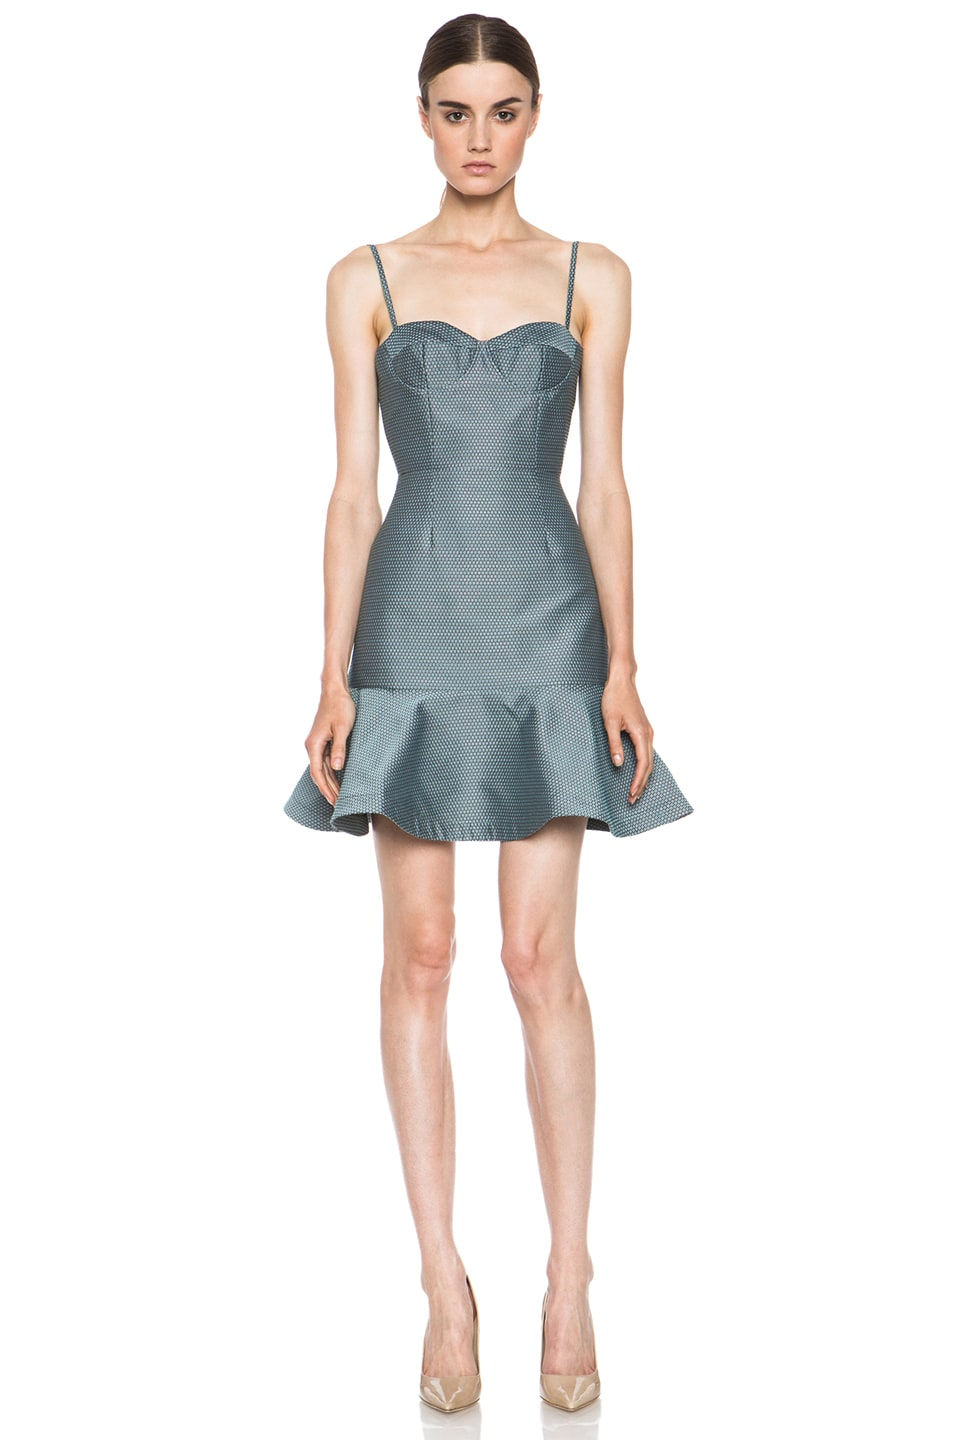 Image 1 of Opening Ceremony Calcite Poly-Blend Dress in Pool Blue